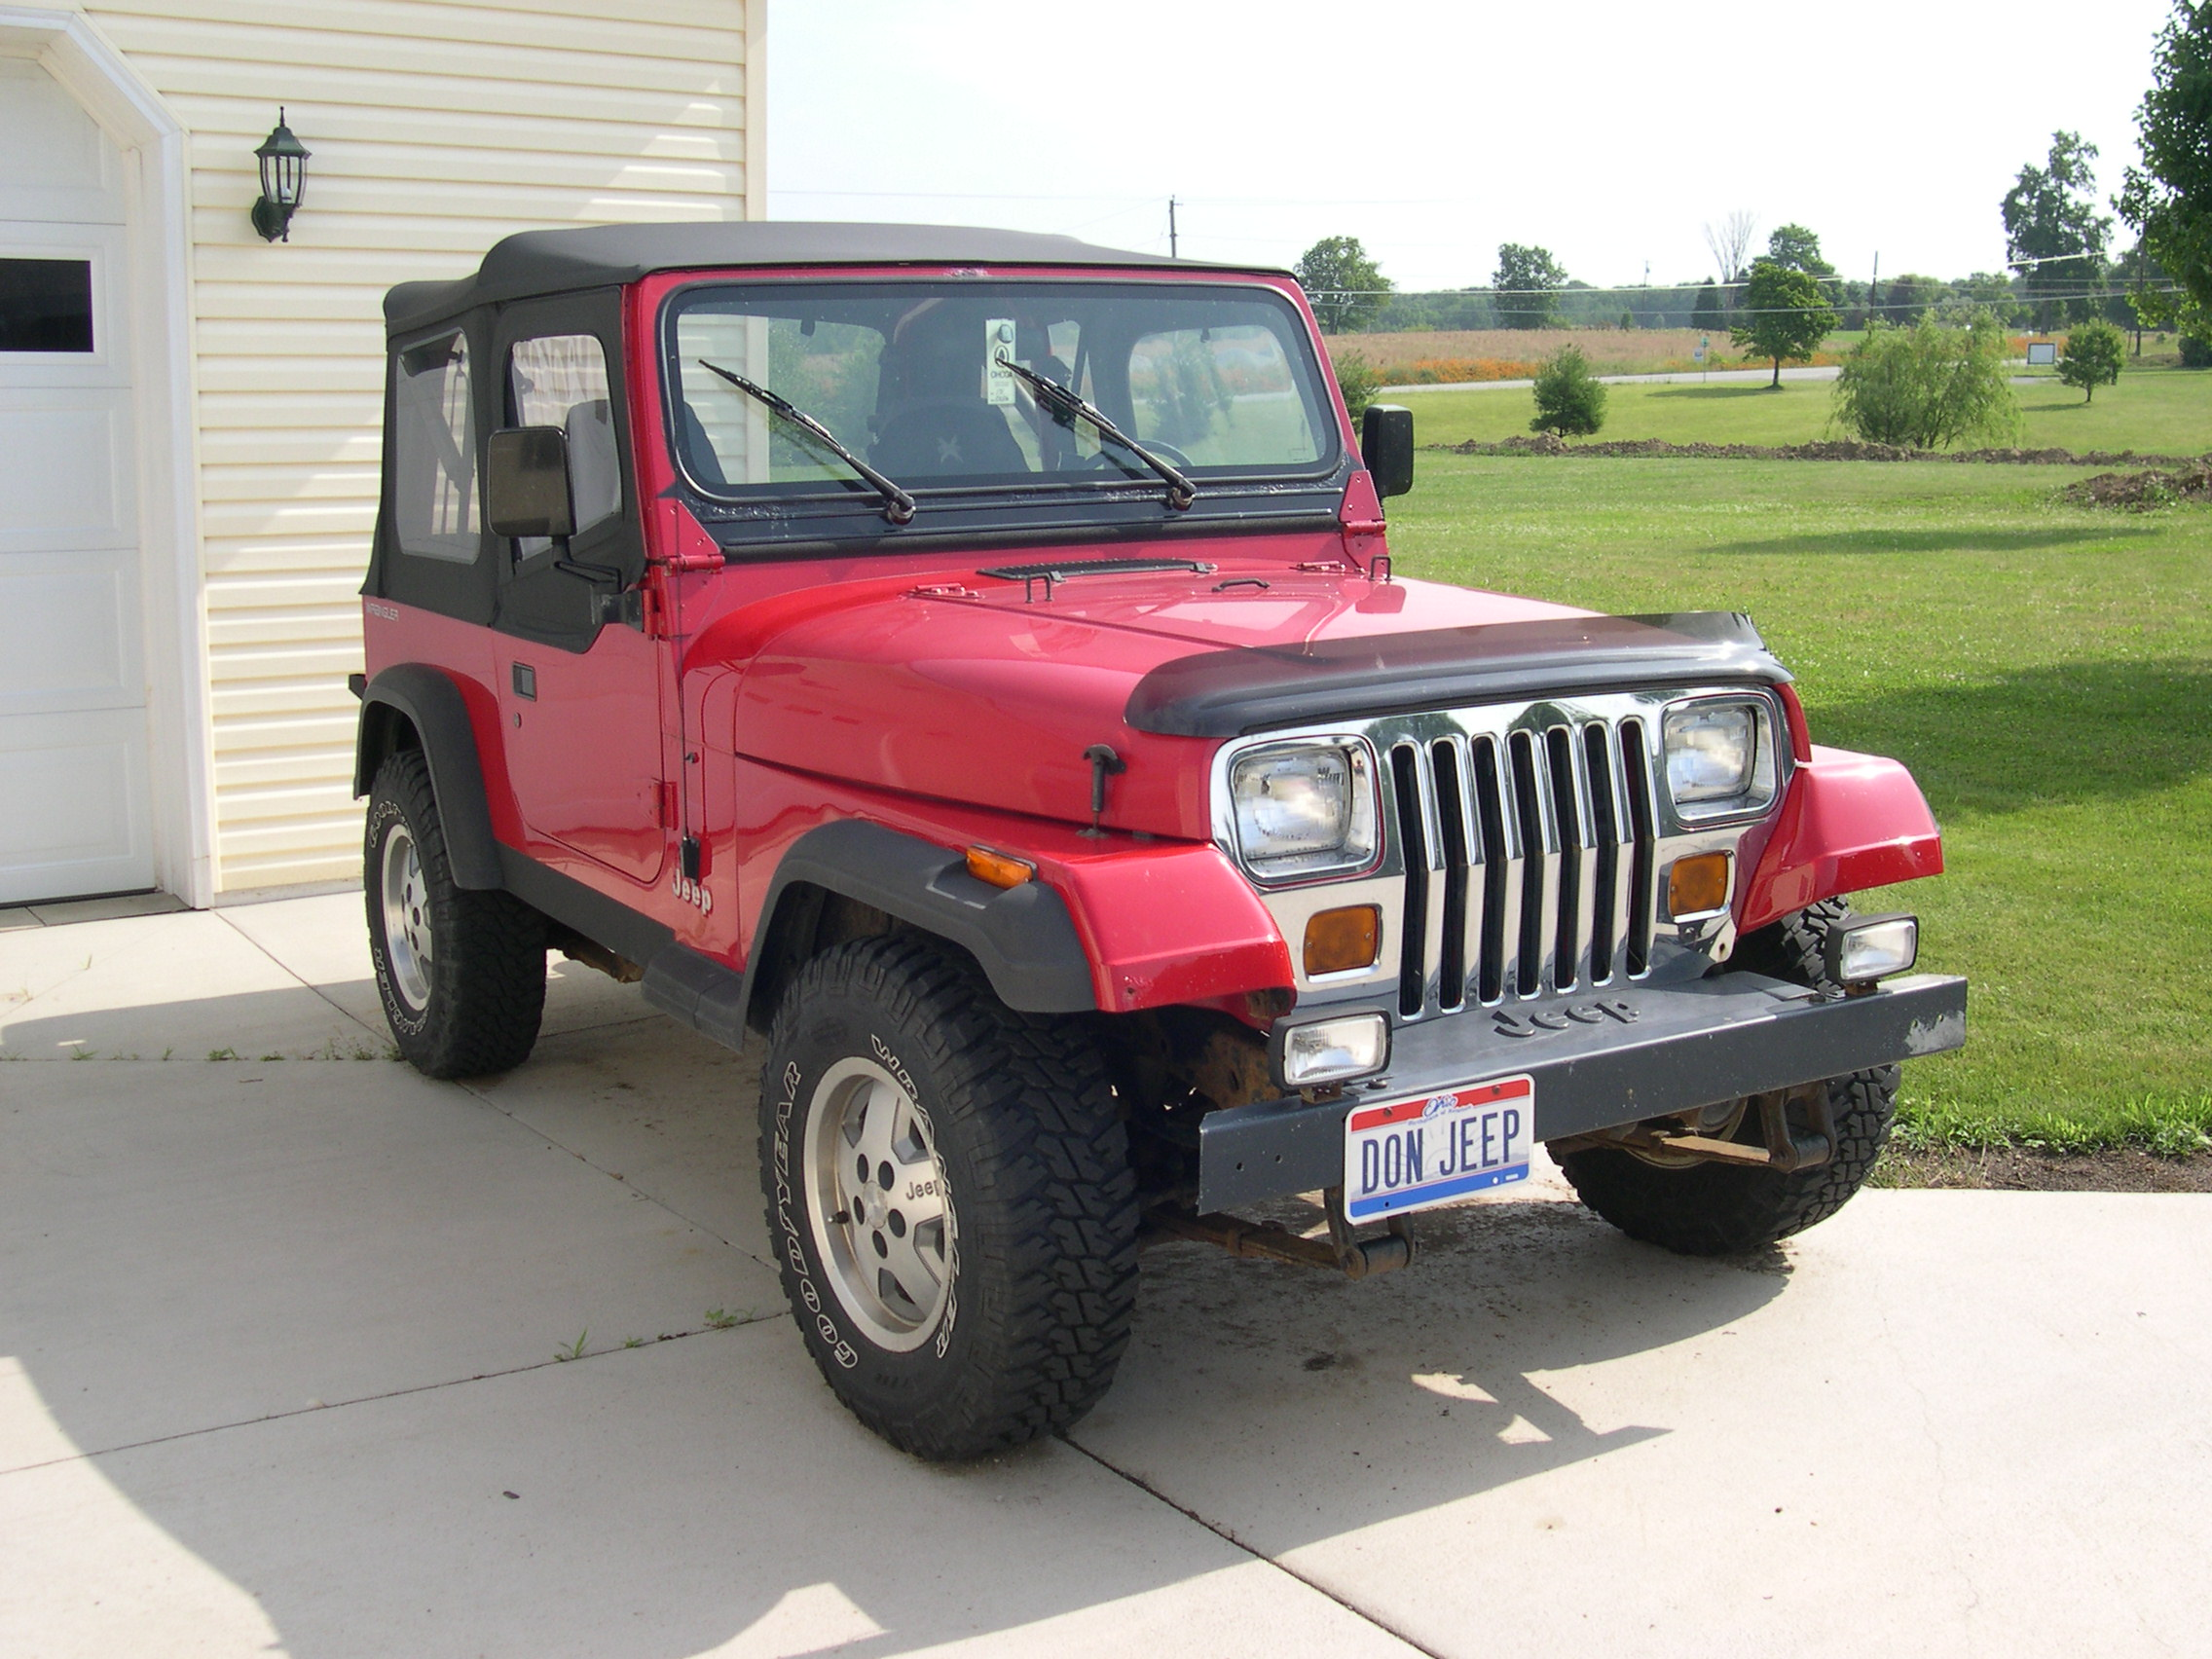 file:1992 jeep yj - wikimedia commons